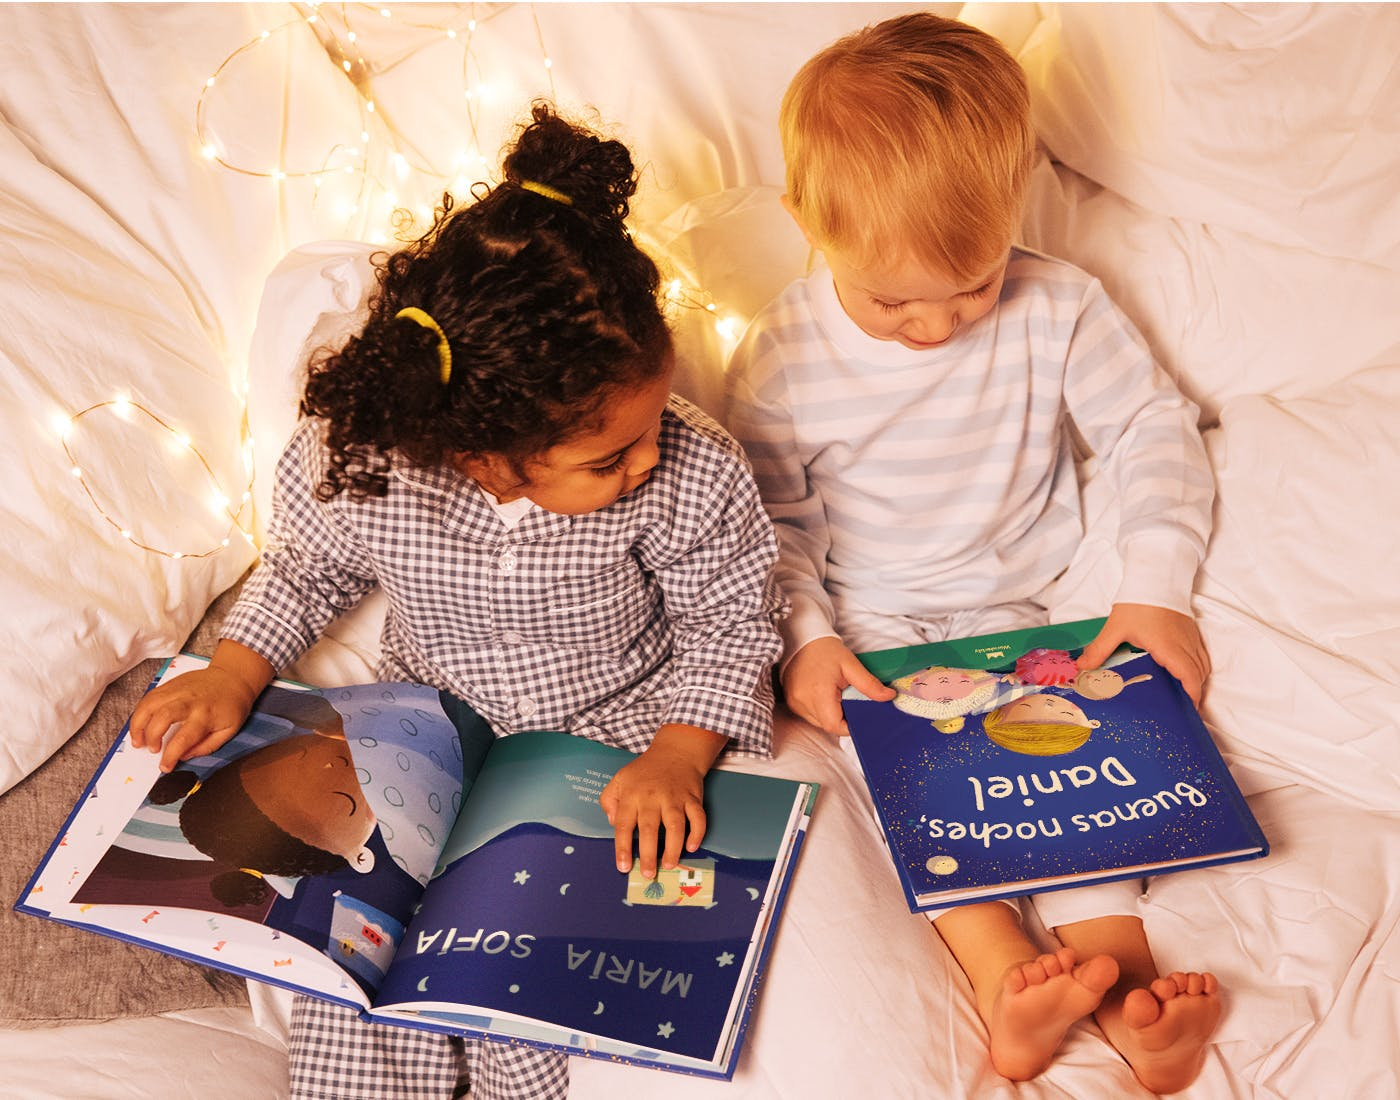 Two children looking at a book - Bedtime For You in Spanish